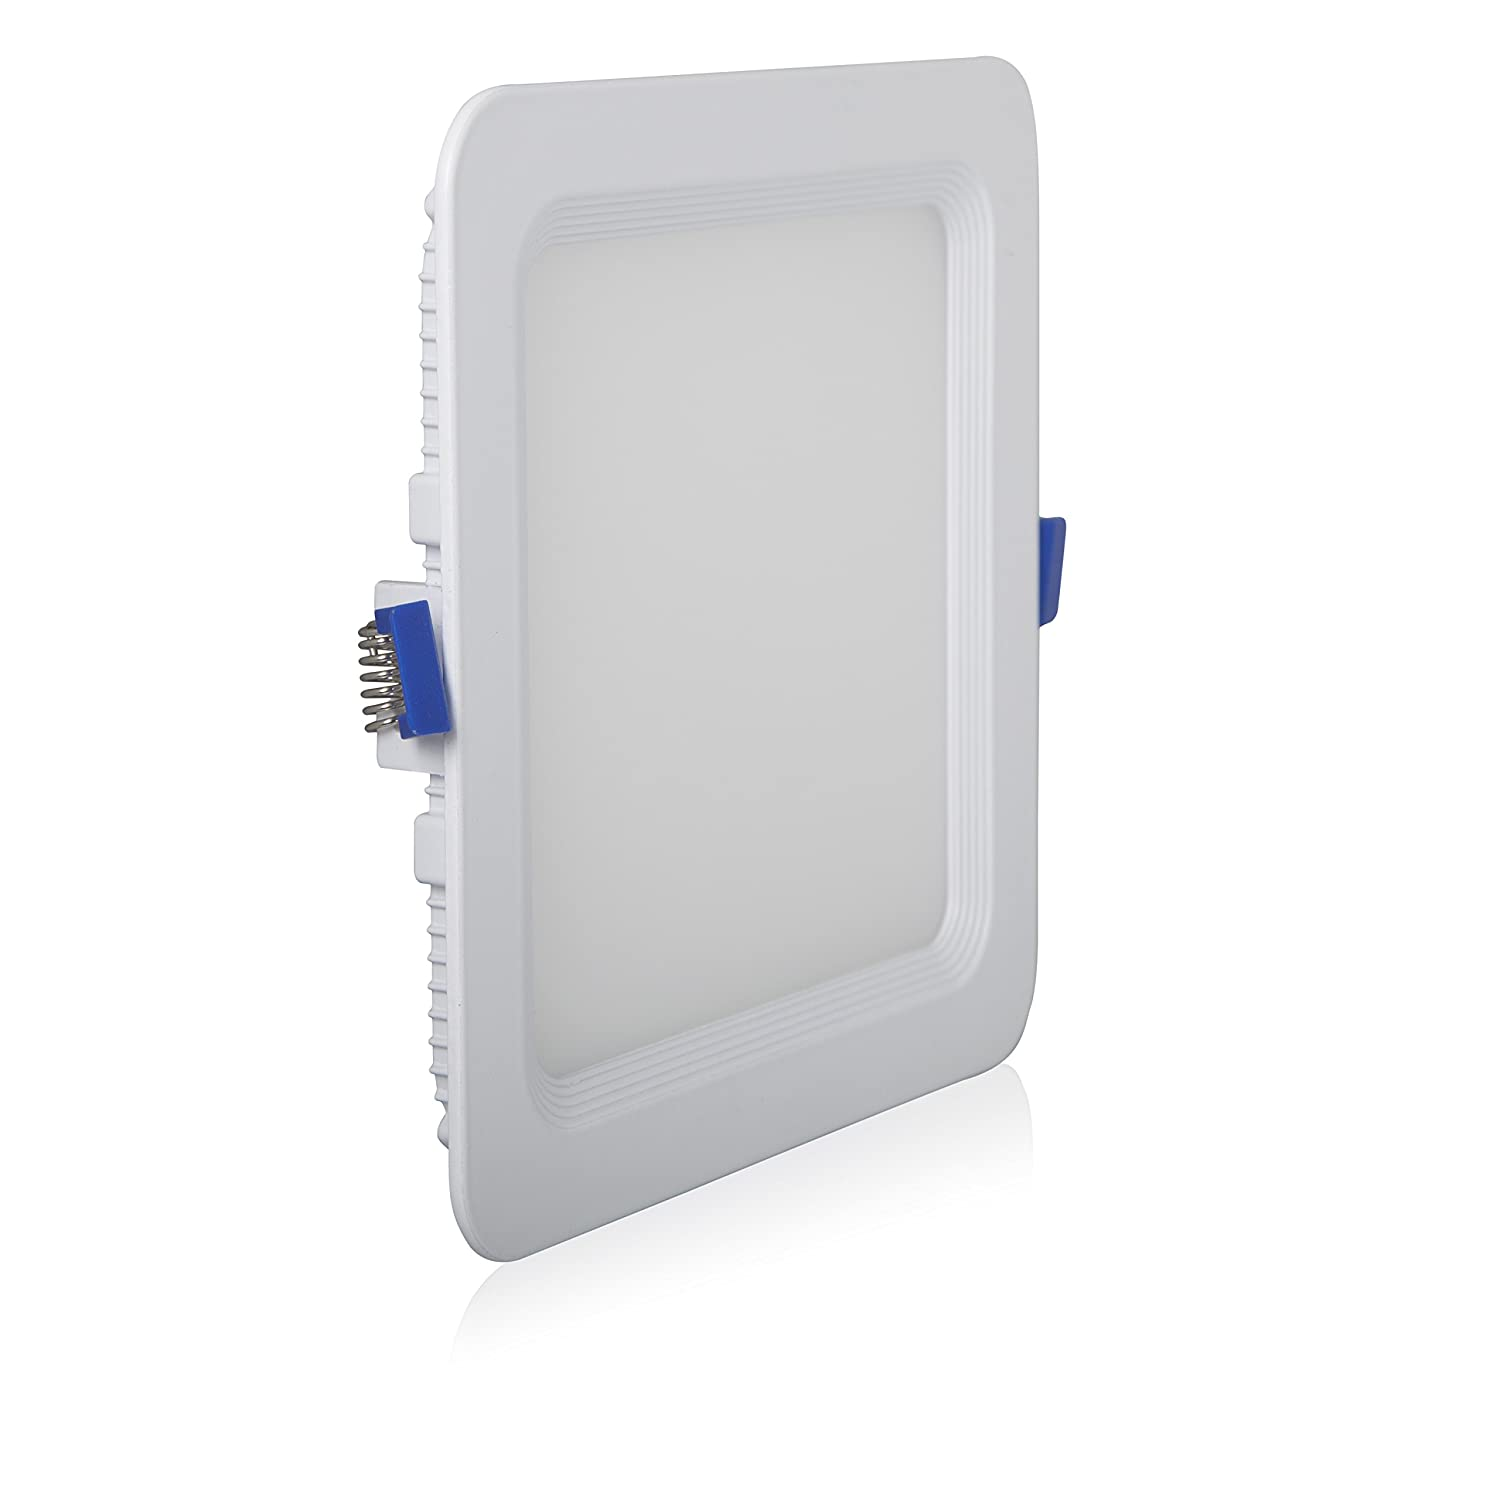 Recessed Retrofit 850 Lumens Maxxima 6 in 12 Watt Junction Box Included. Warm White 2700K Dimmable Slim Round LED Downlight Flat Panel Light Fixture